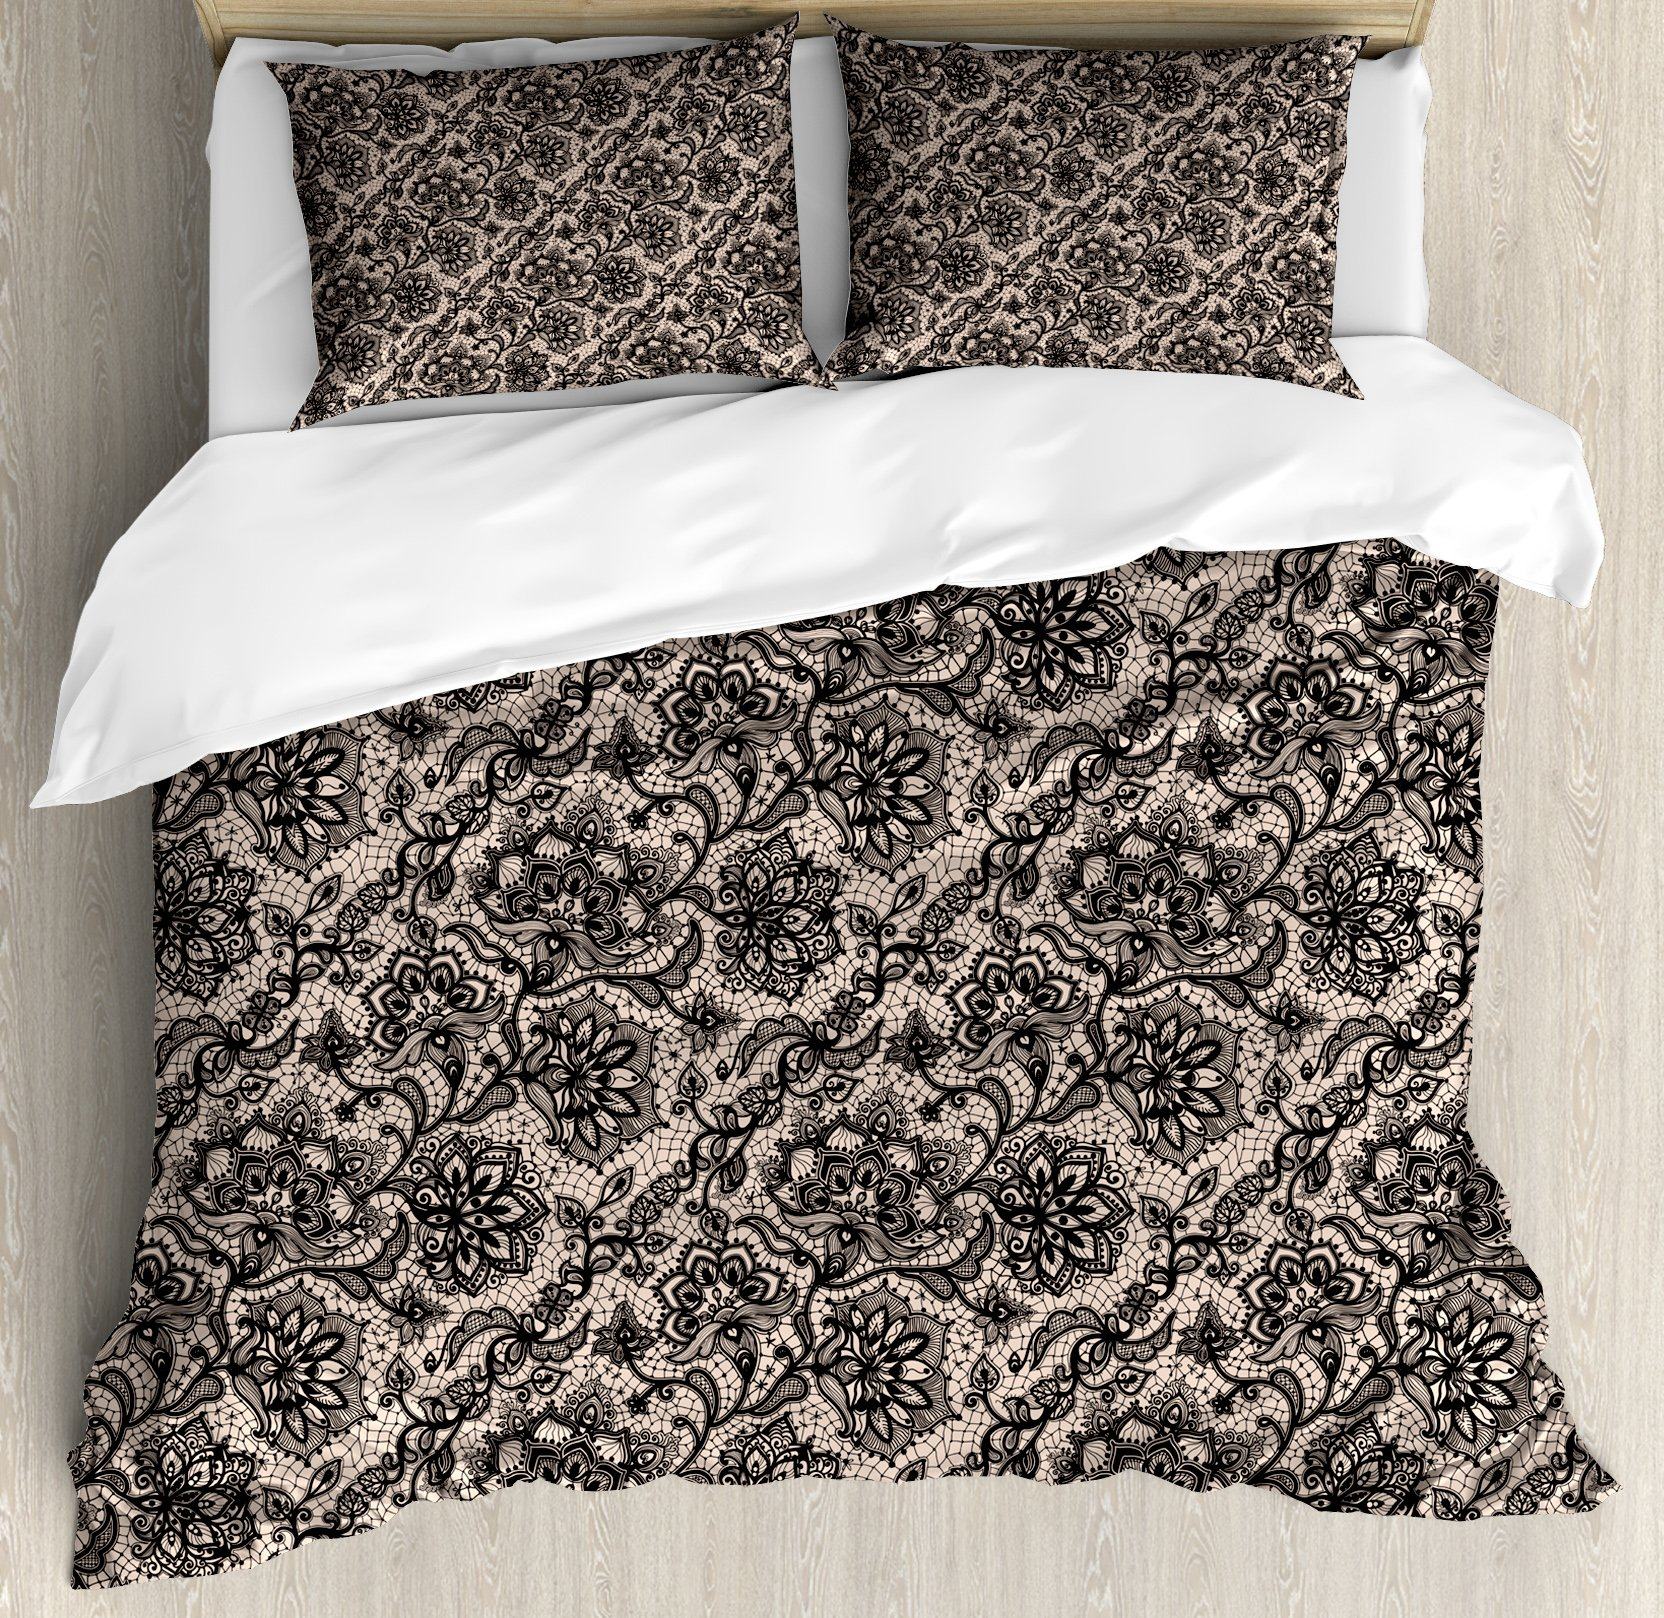 Ambesonne Gothic Duvet Cover Set Abstract Graphic Lace Pattern With Flowers Butterflies Old Fashioned Nature Inspired Decorative 3 Piece Bedding Set With 2 Pillow Shams Queen Size Black Tan Home